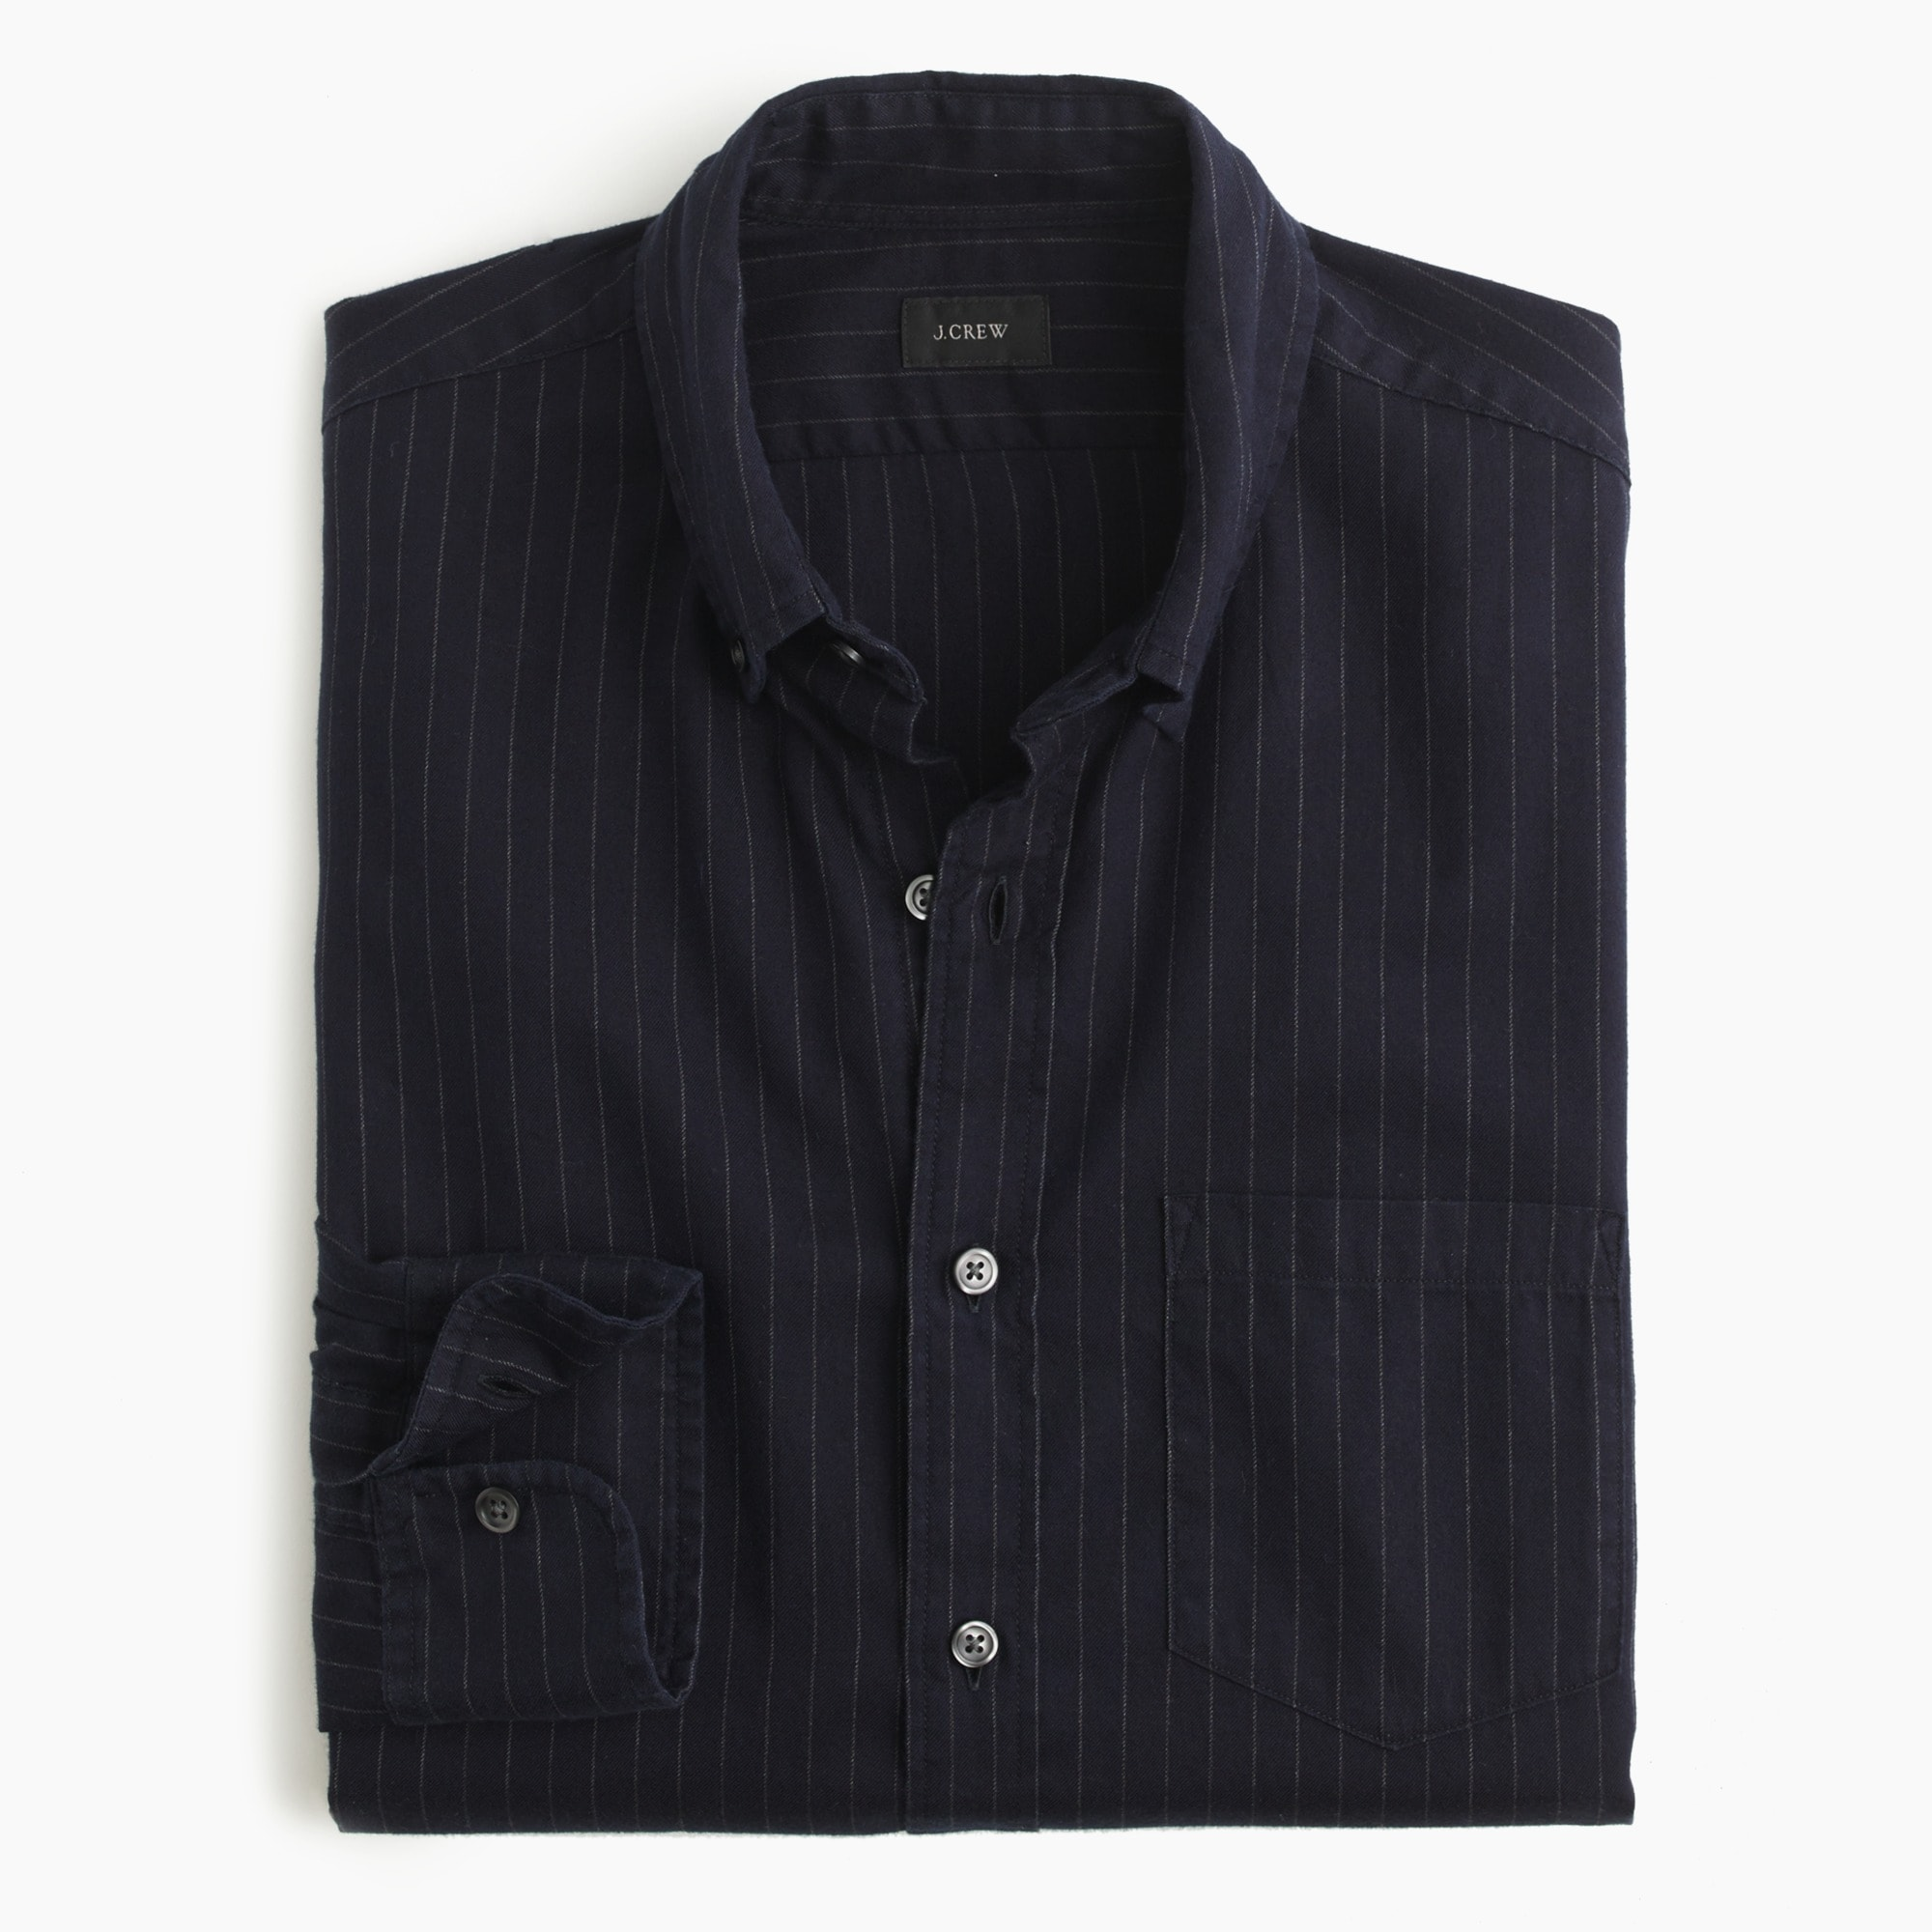 Brushed heather twill shirt in pinstripe